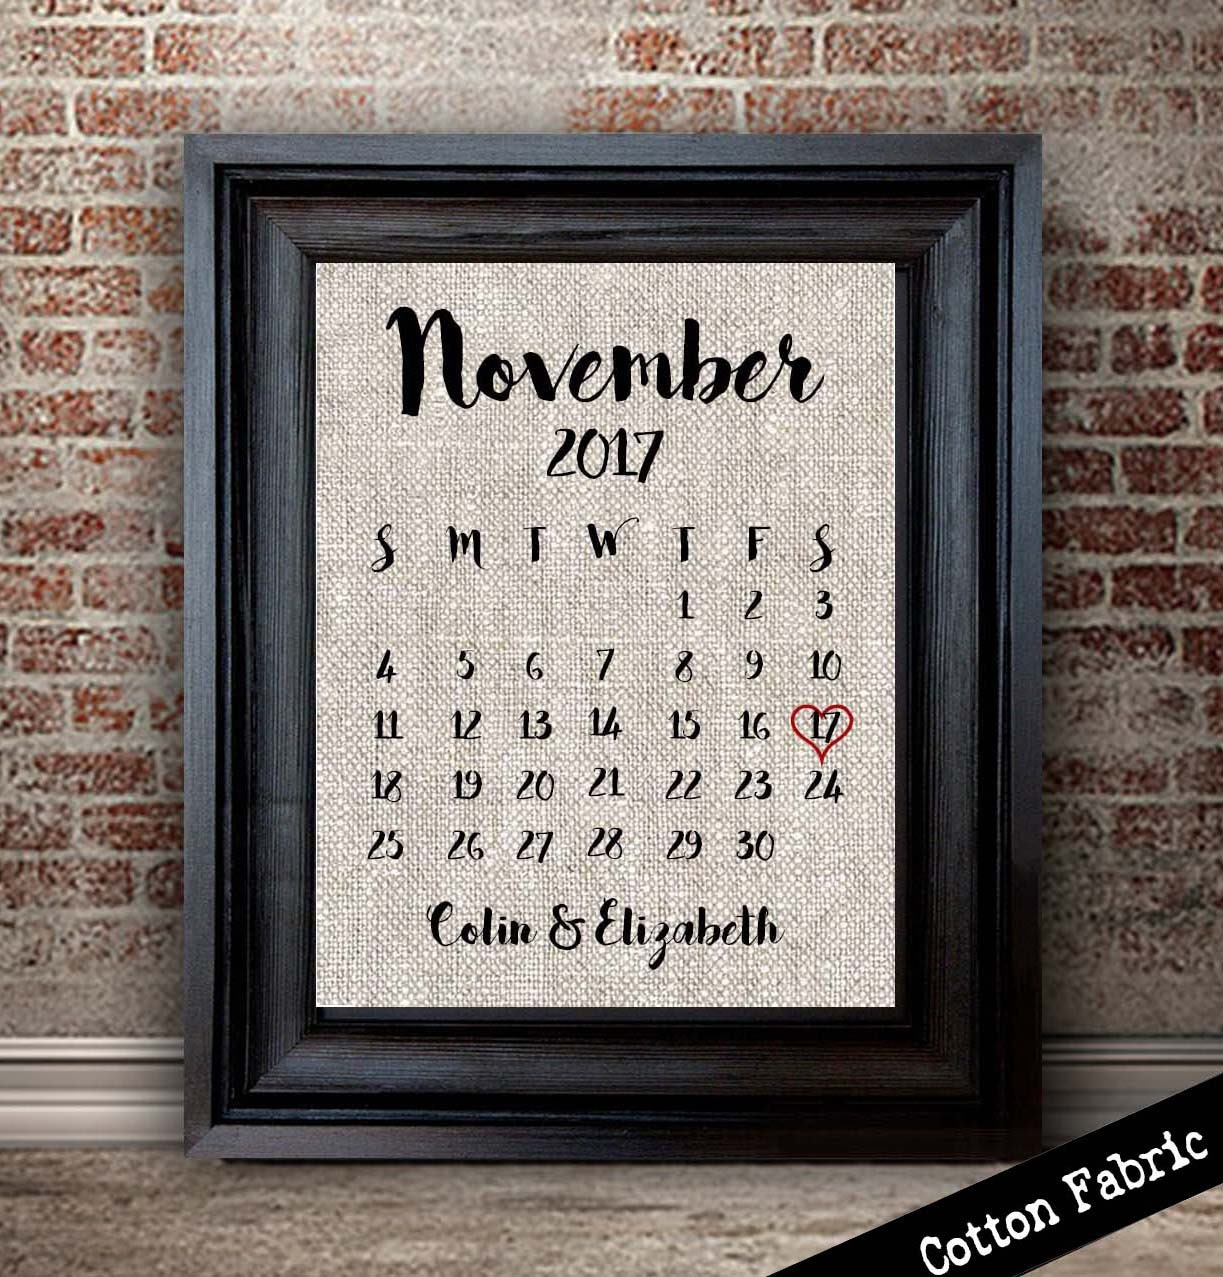 Cotton Wedding Anniversary Gift Ideas For Her: Cotton Anniversary Gift For Her Anniversary Calendar 2nd